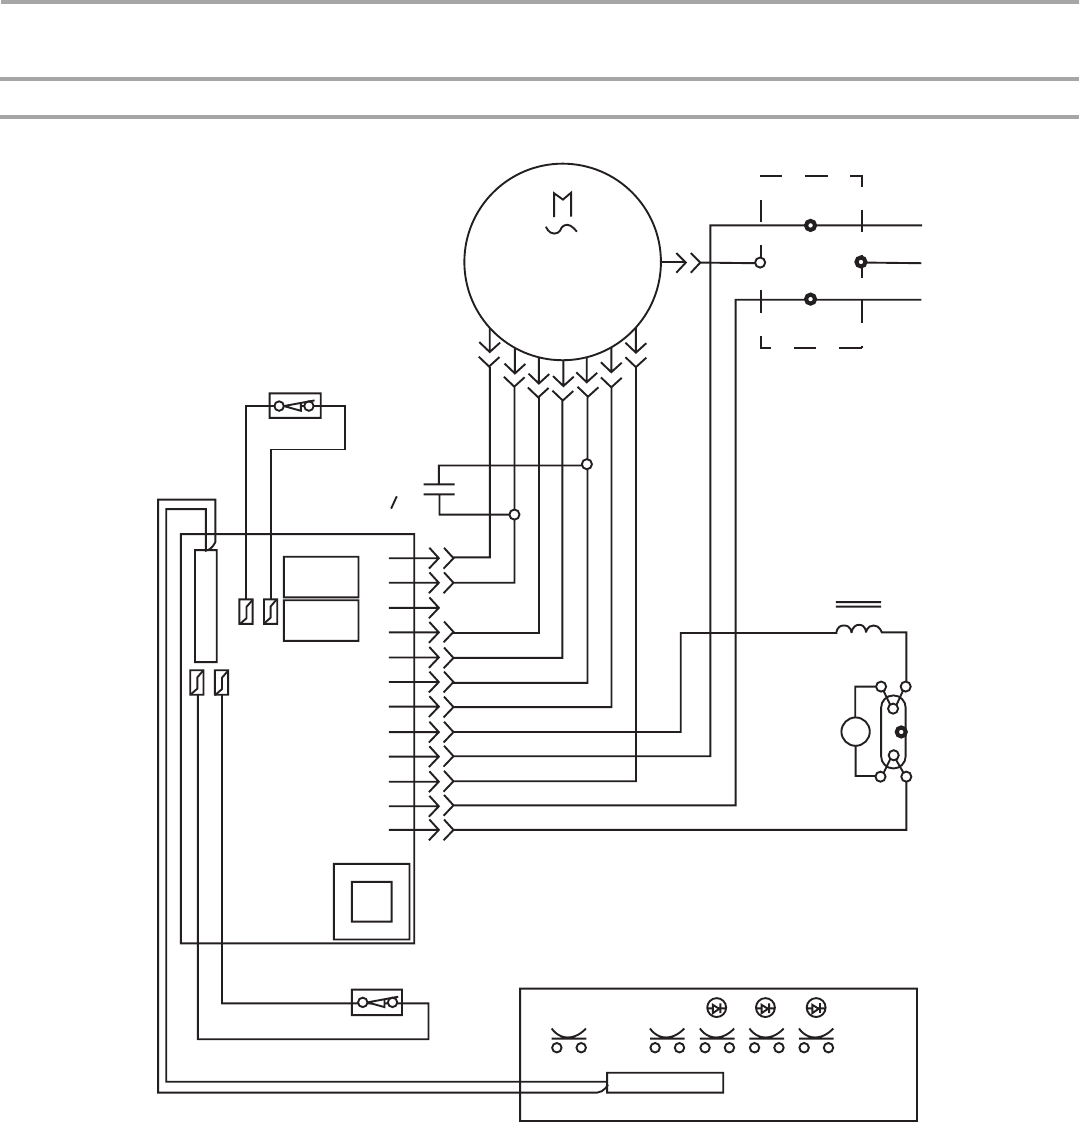 4 L  T12 Ballast Wiring Diagram as well Wiring Diagram Also Fluorescent Light Ballast likewise How Install Led Lights Fluorescent Replacements additionally T5 Ballast Wiring Diagram as well Starter Wiring With A Fluorescent Light Fixture. on 3 lamp t5 emergency ballast wiring diagram